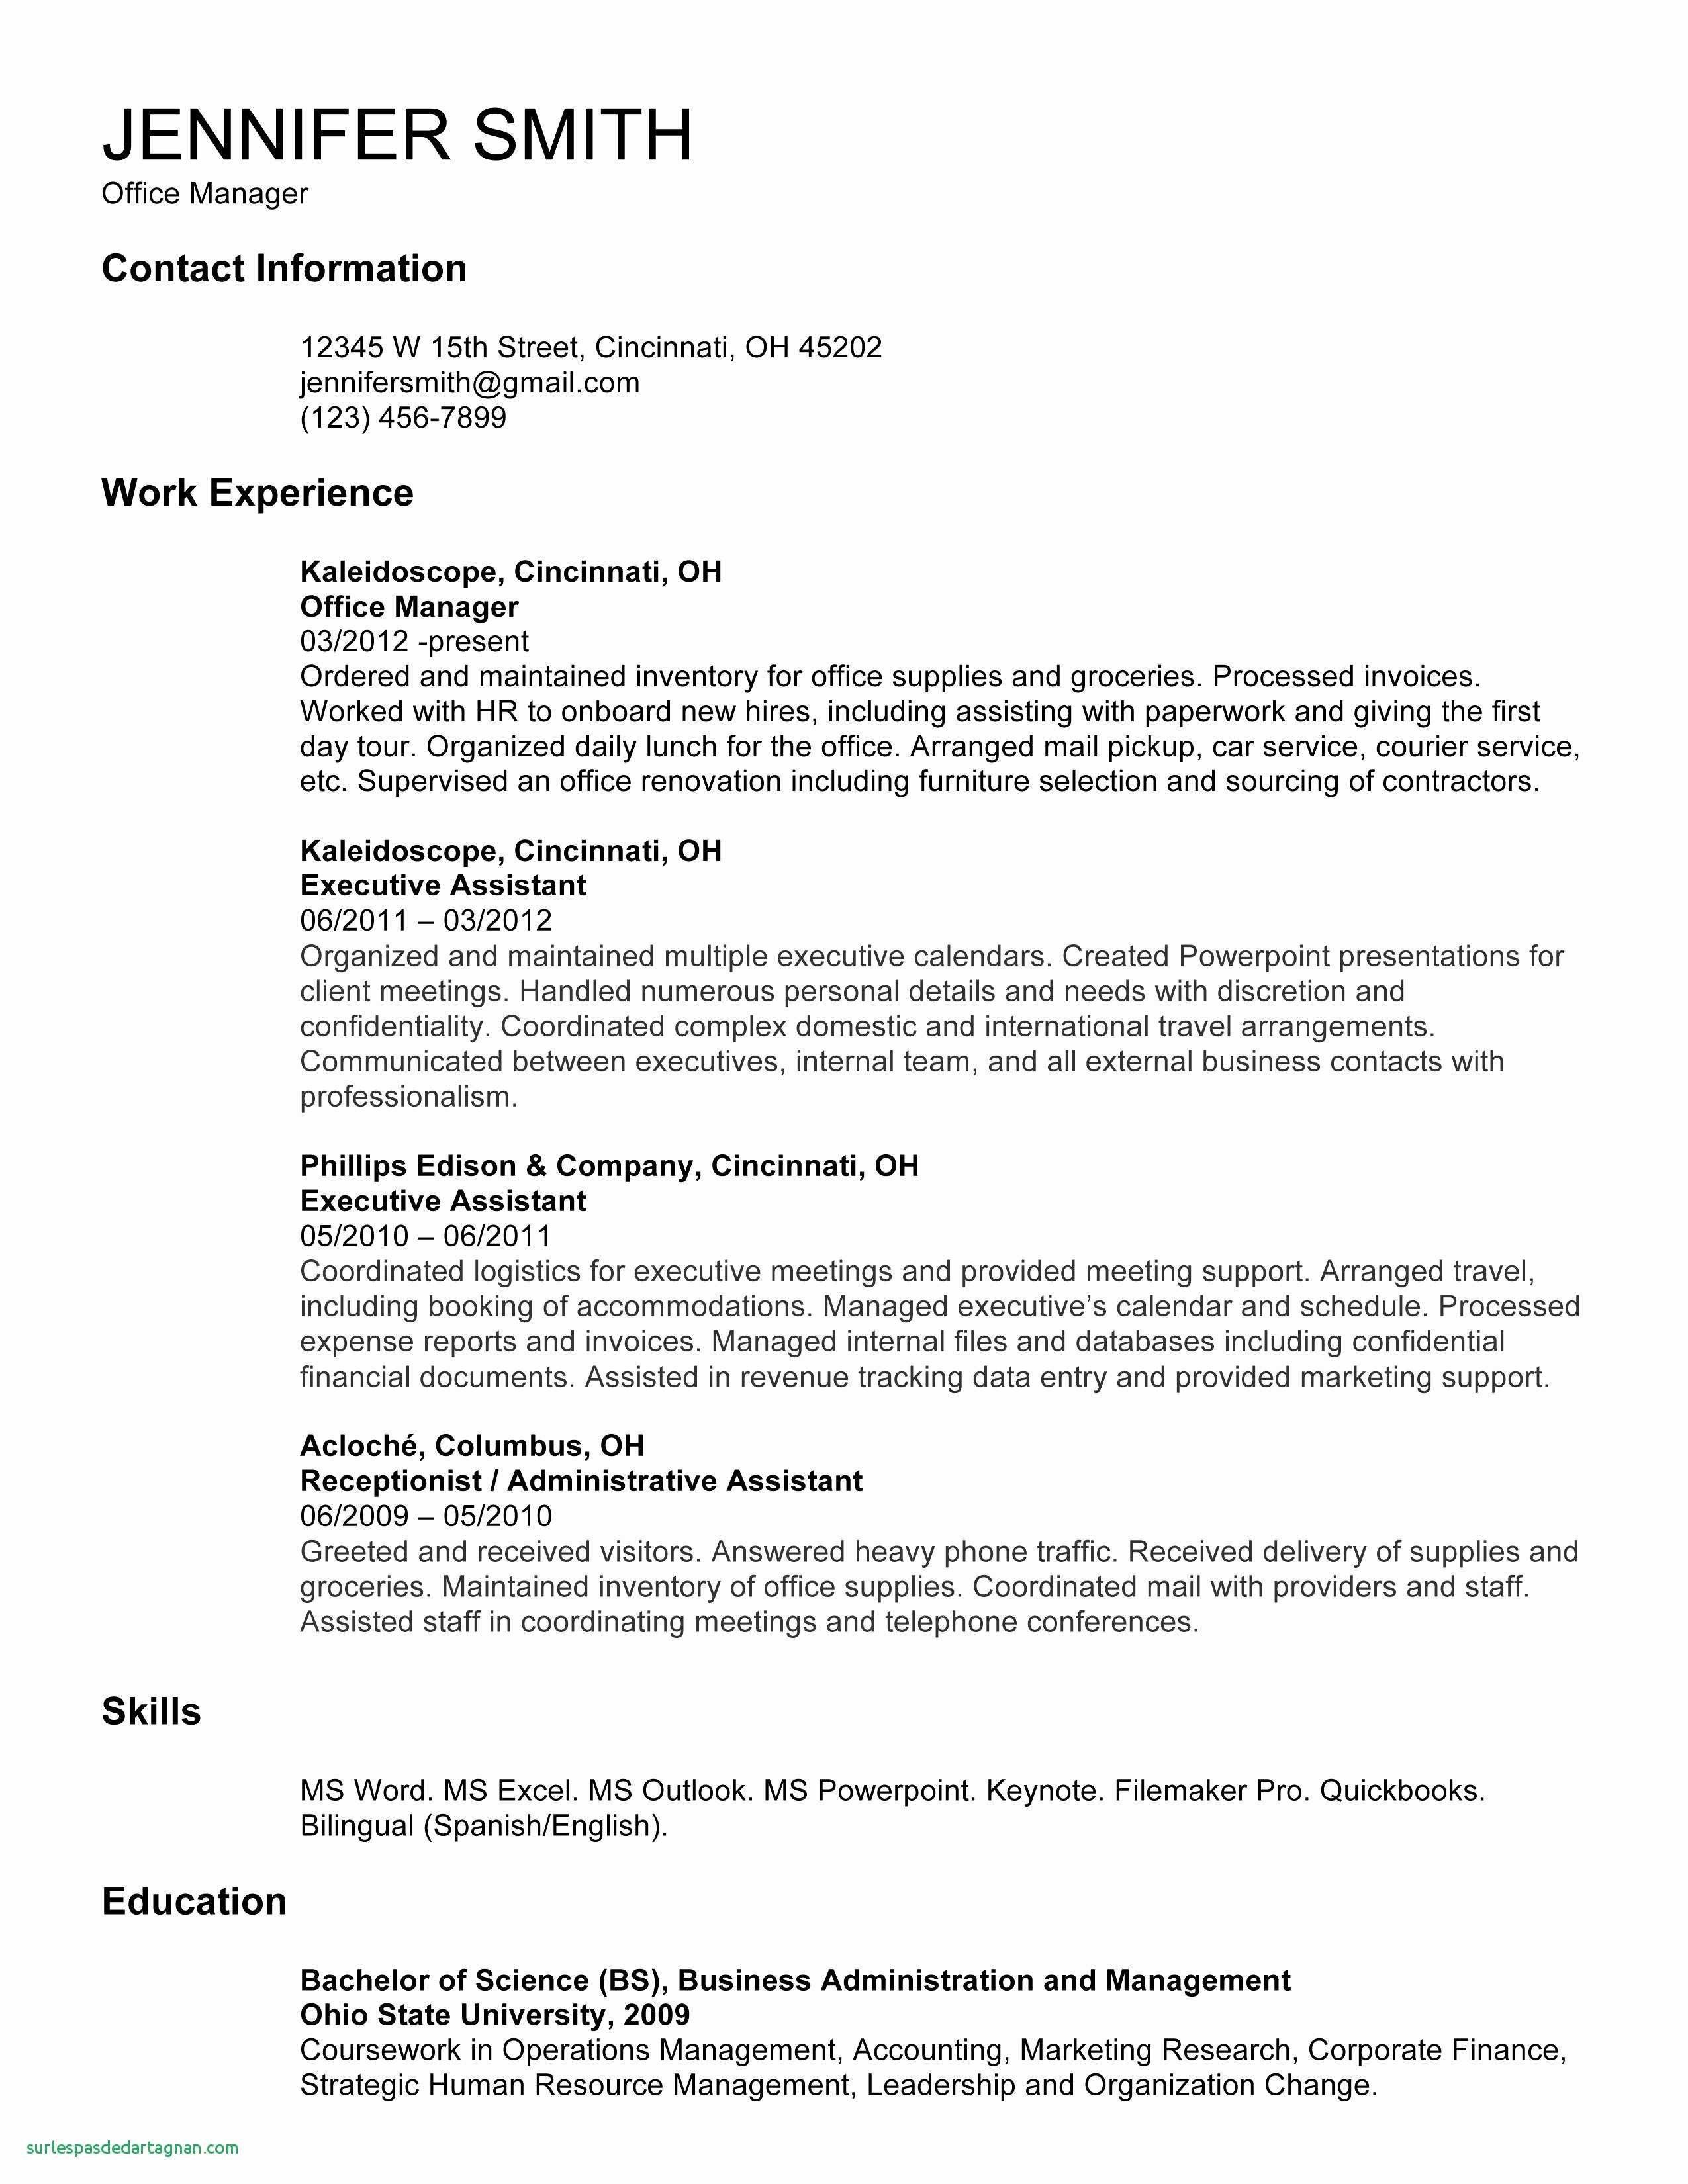 Free Ms Word Resume Templates - Resume Template Download Free Unique ¢Ë†Å¡ Resume Template Download